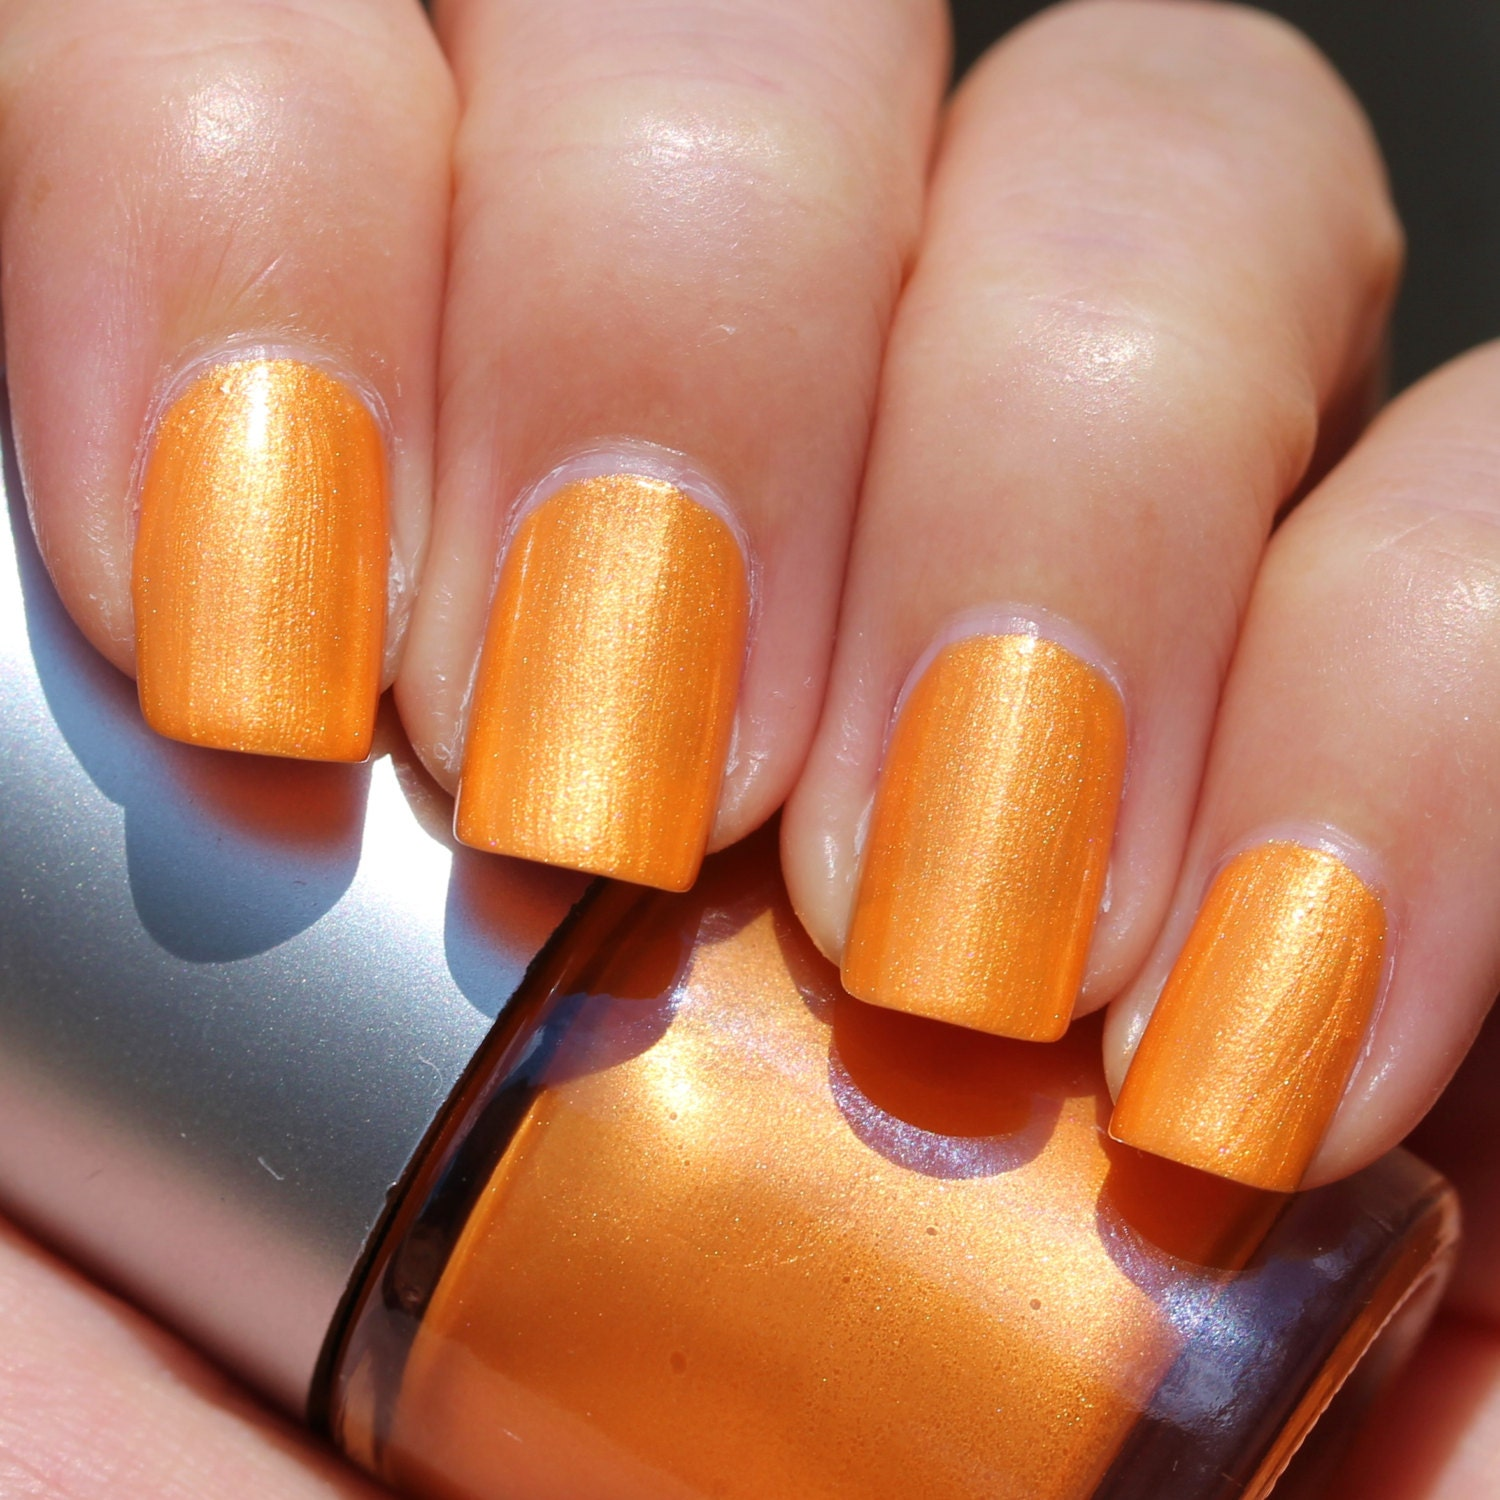 Sunet Franken Nail Polish Bright orange color with gold